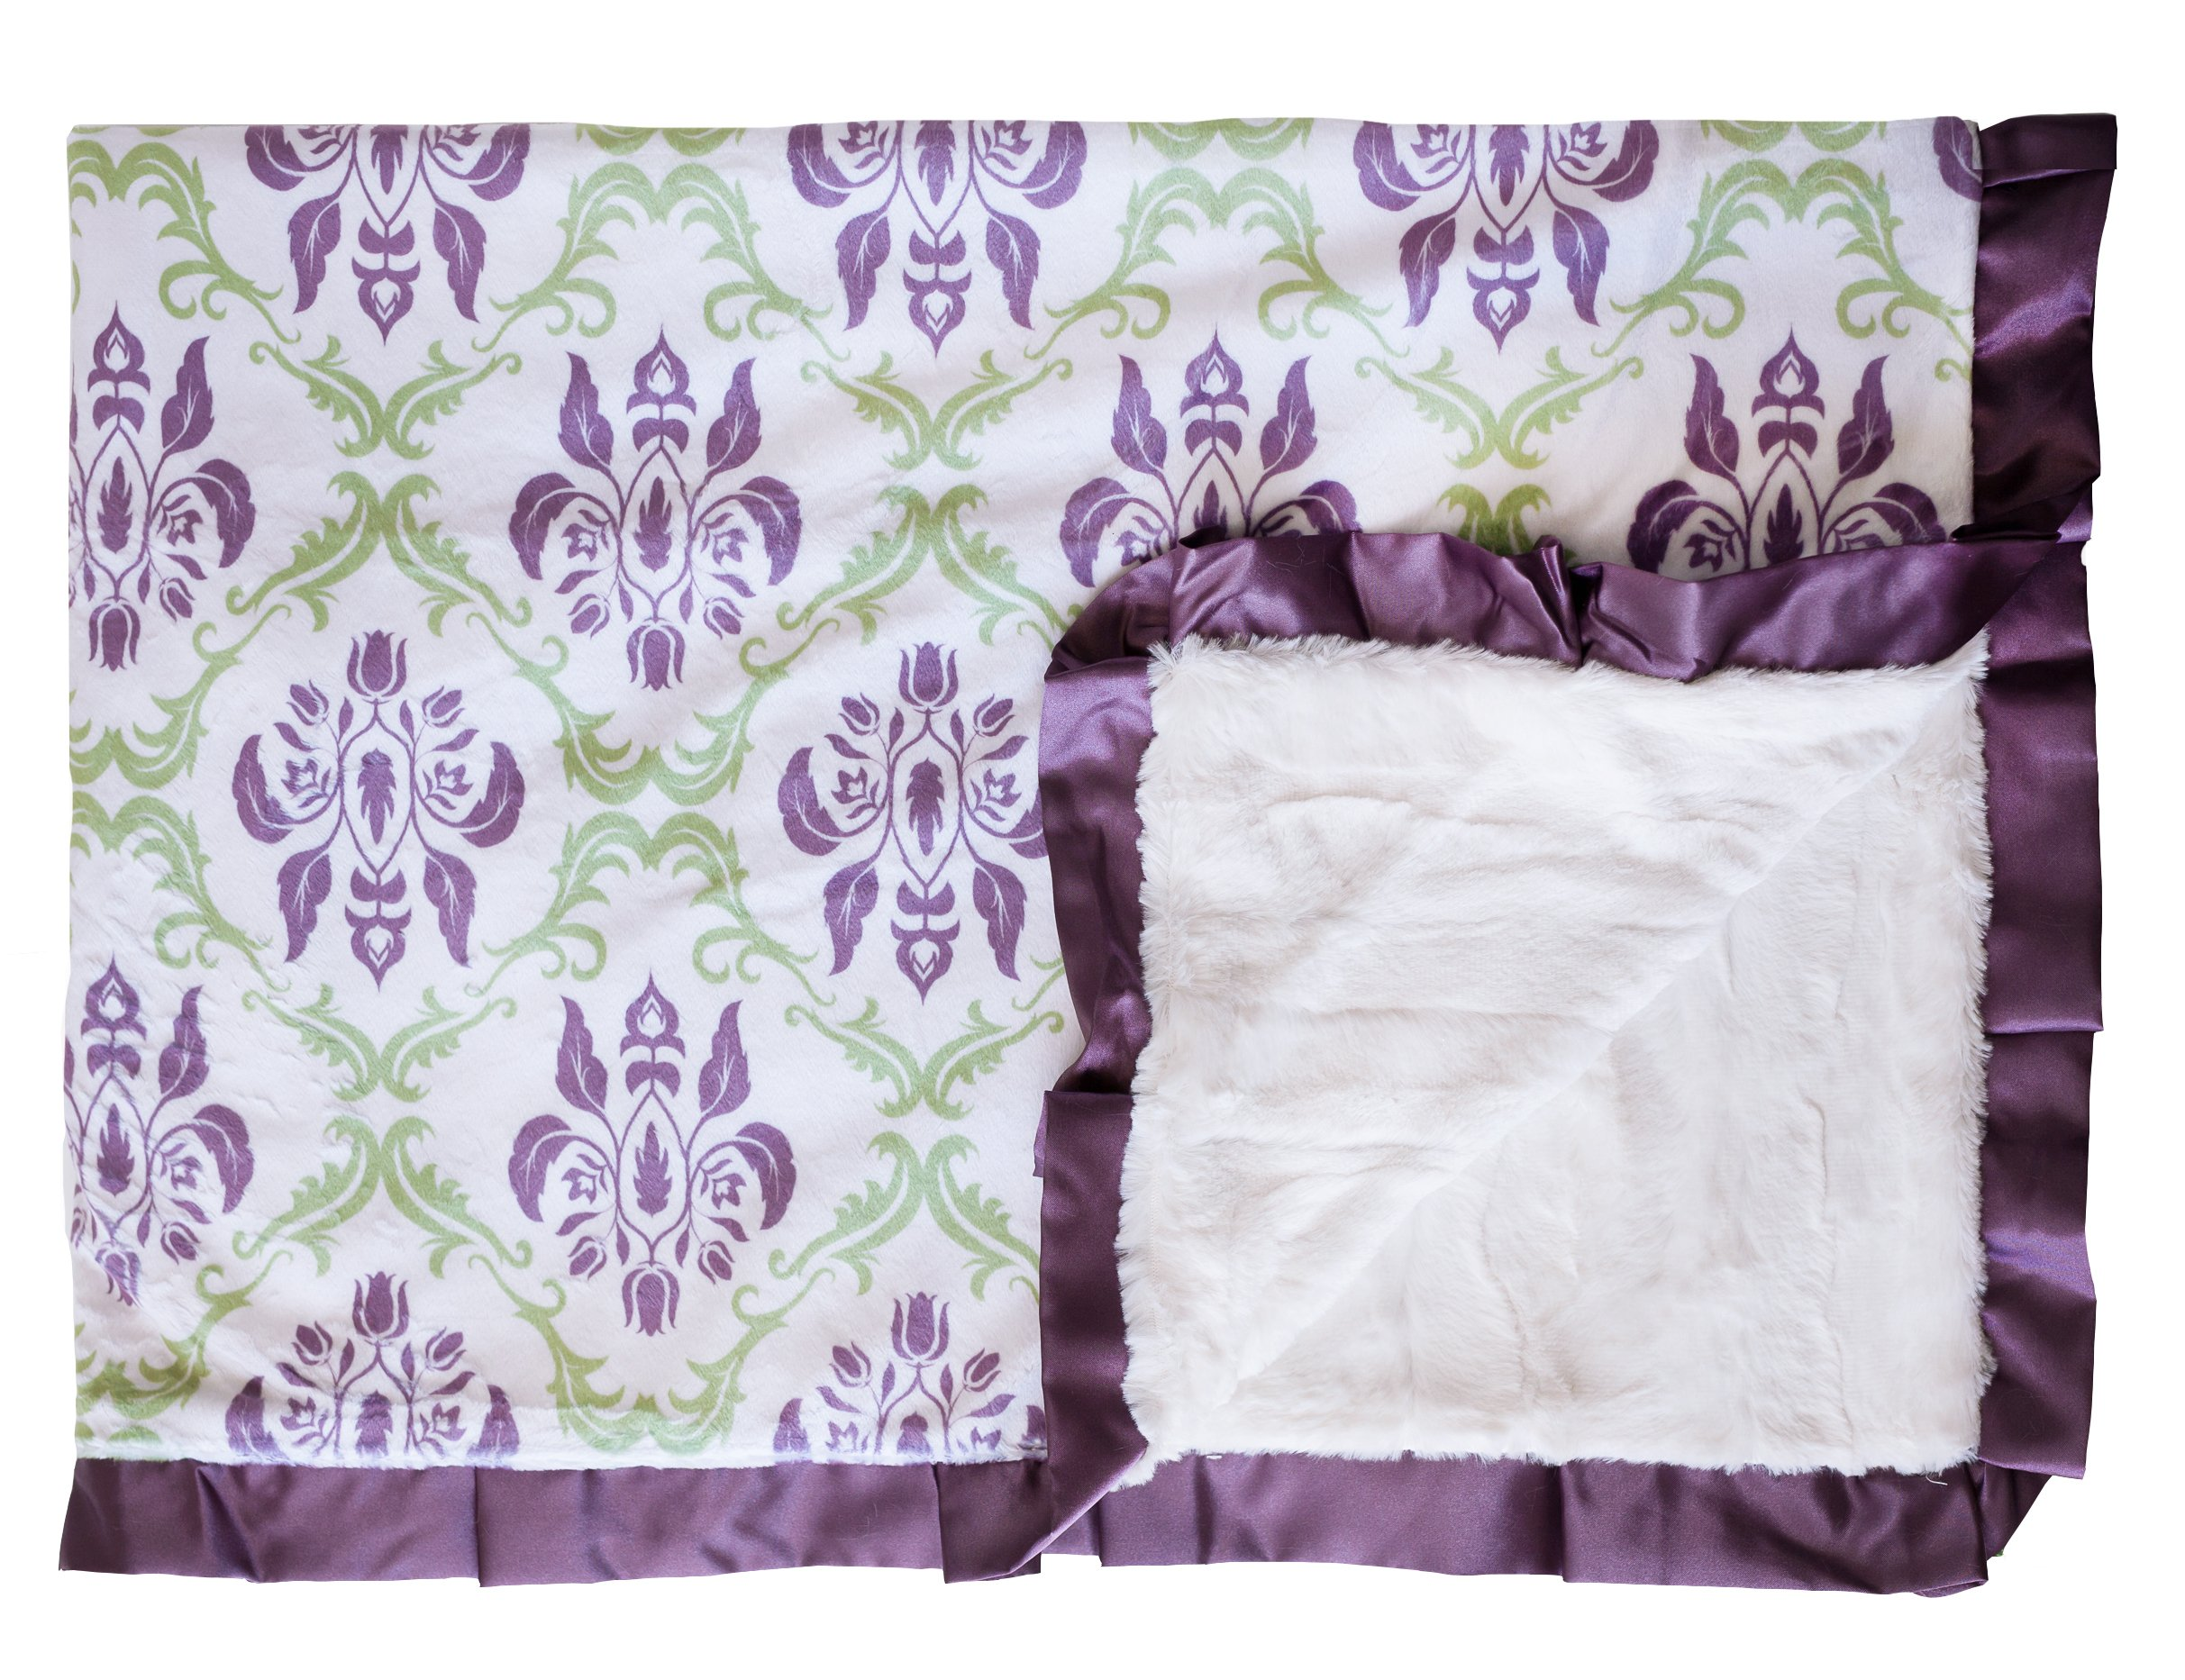 Minky Couture Printed Premium Blanket - Soft, Warm, Cozy, Comfortable, Perfect Gift! (Monster, Paris Sage/Purple)